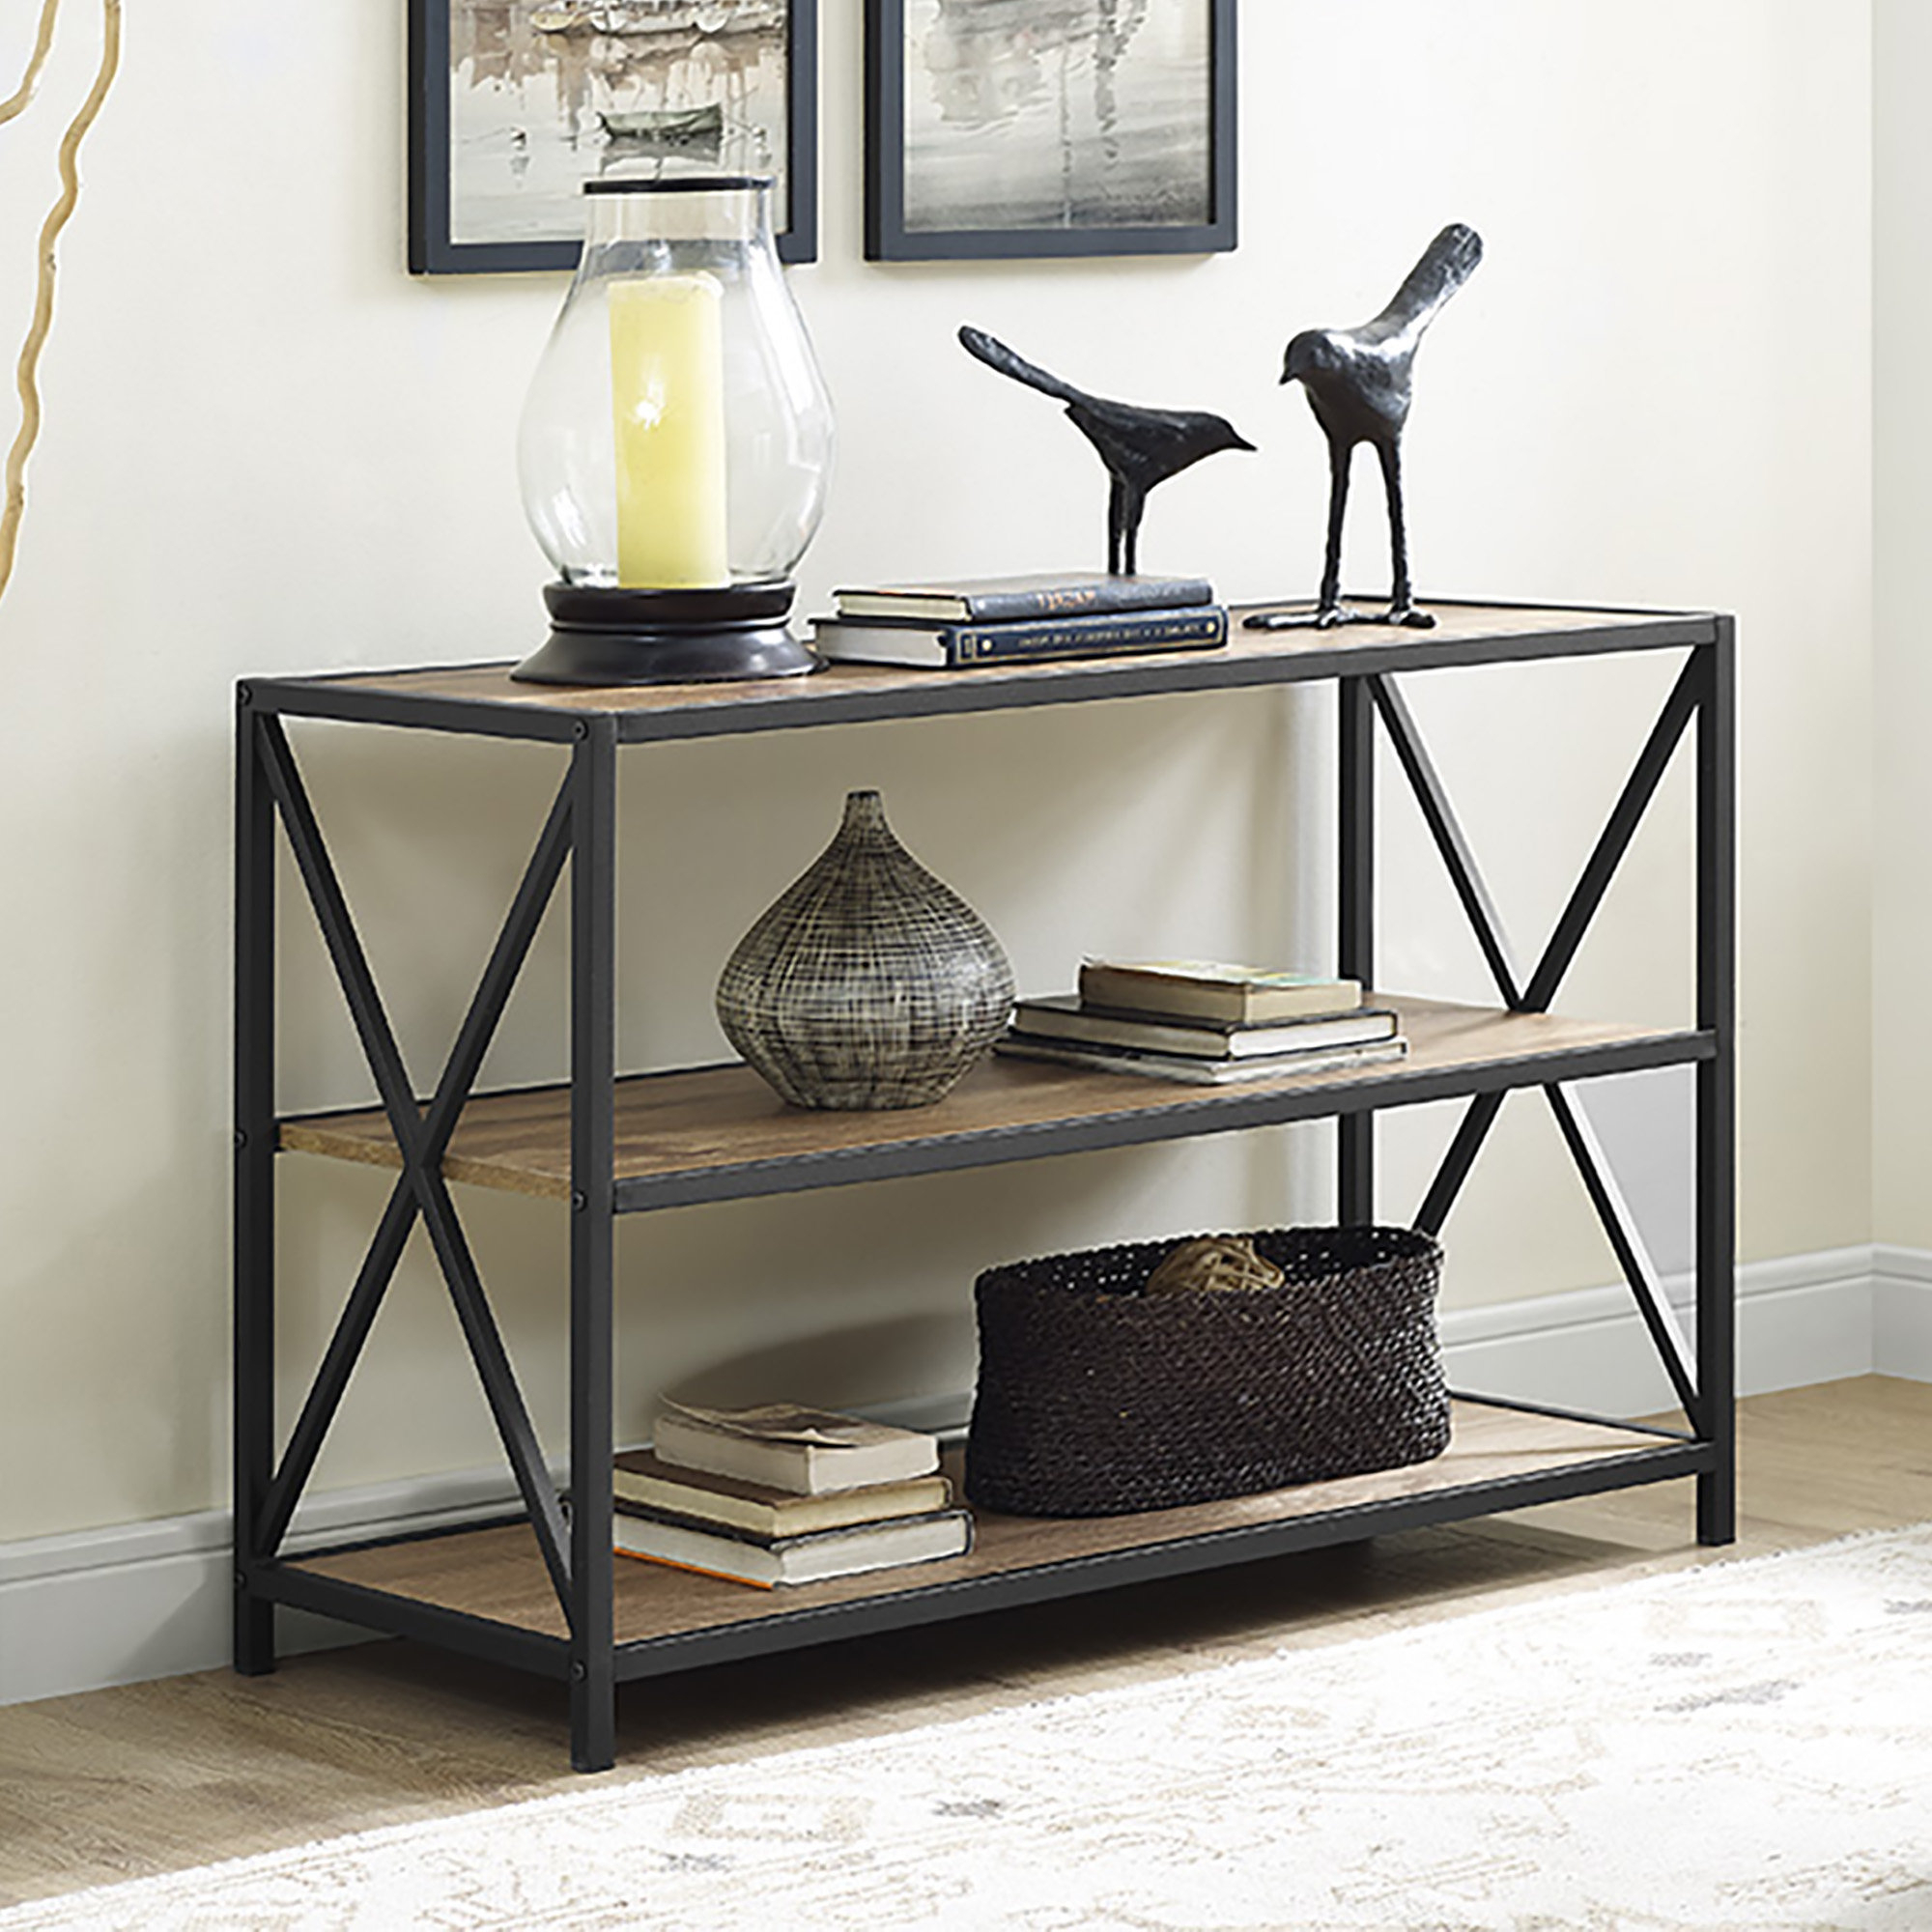 Newest Augustus Etagere Bookcases Pertaining To Augustus Etagere Bookcase (Gallery 7 of 20)